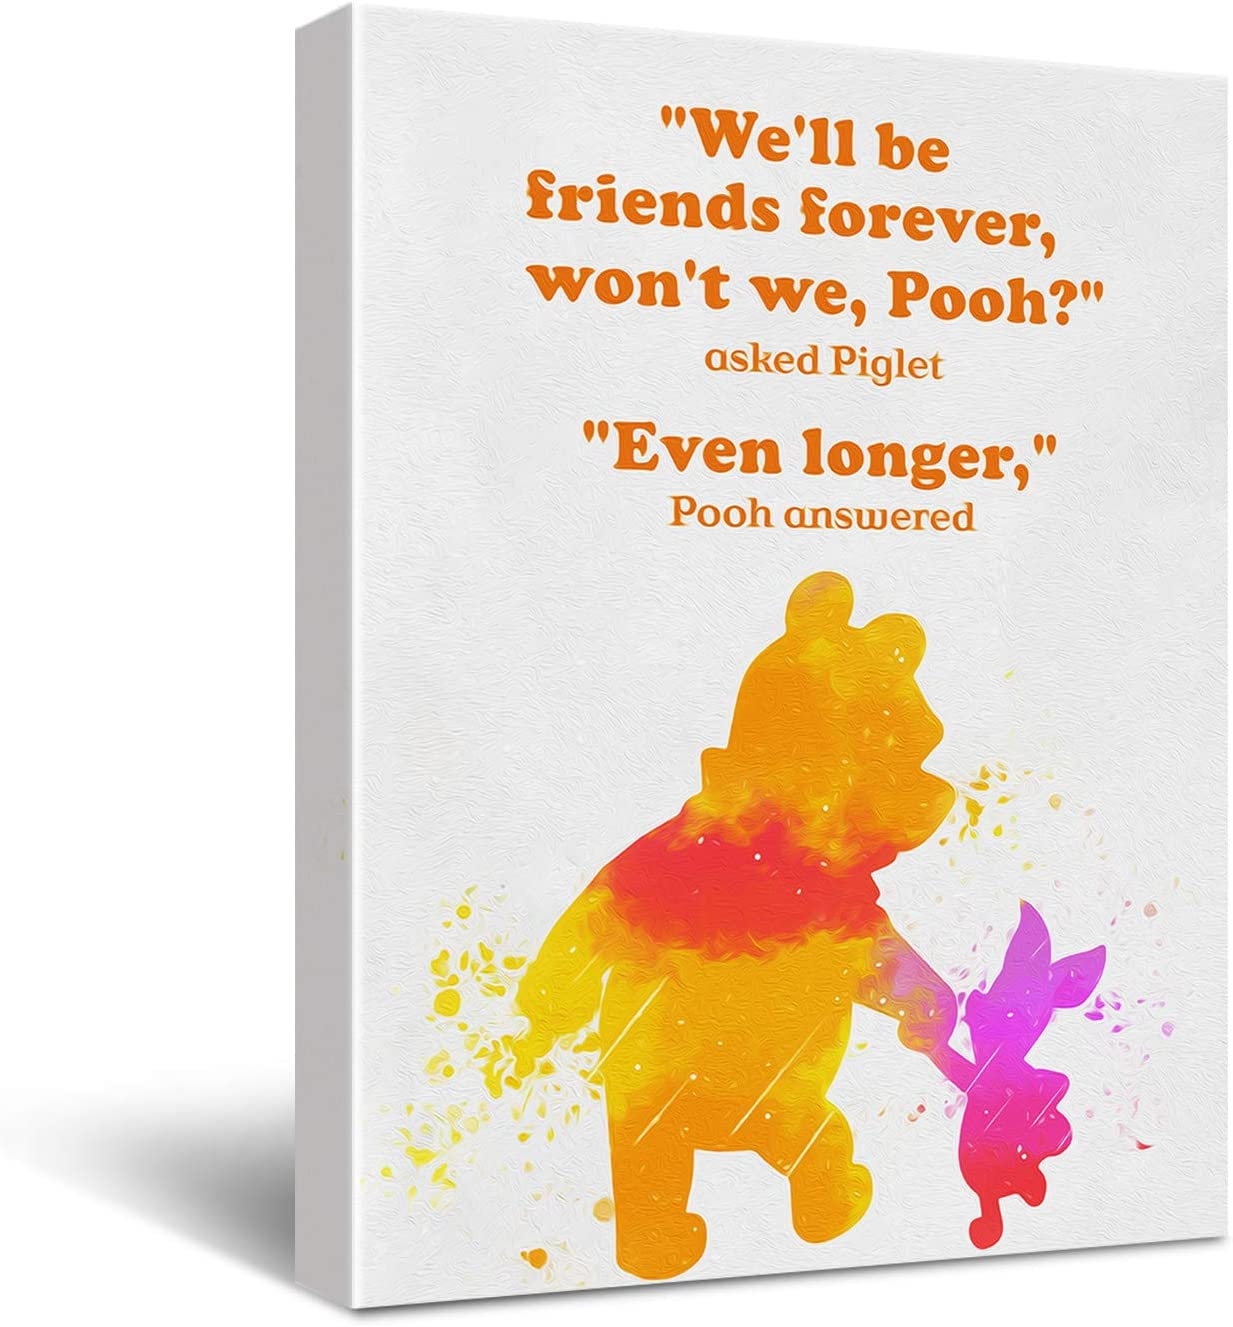 Classic Winnie The Pooh Friendship Quote Watercolor Poster Canvas Wall Art Painting Ready to Hang Home Decoration for Nursery/Bedroom/Kids Room Decor - Winnie The Pooh Gifts for Kids Teens Girls Women - 11.5x15 Inch